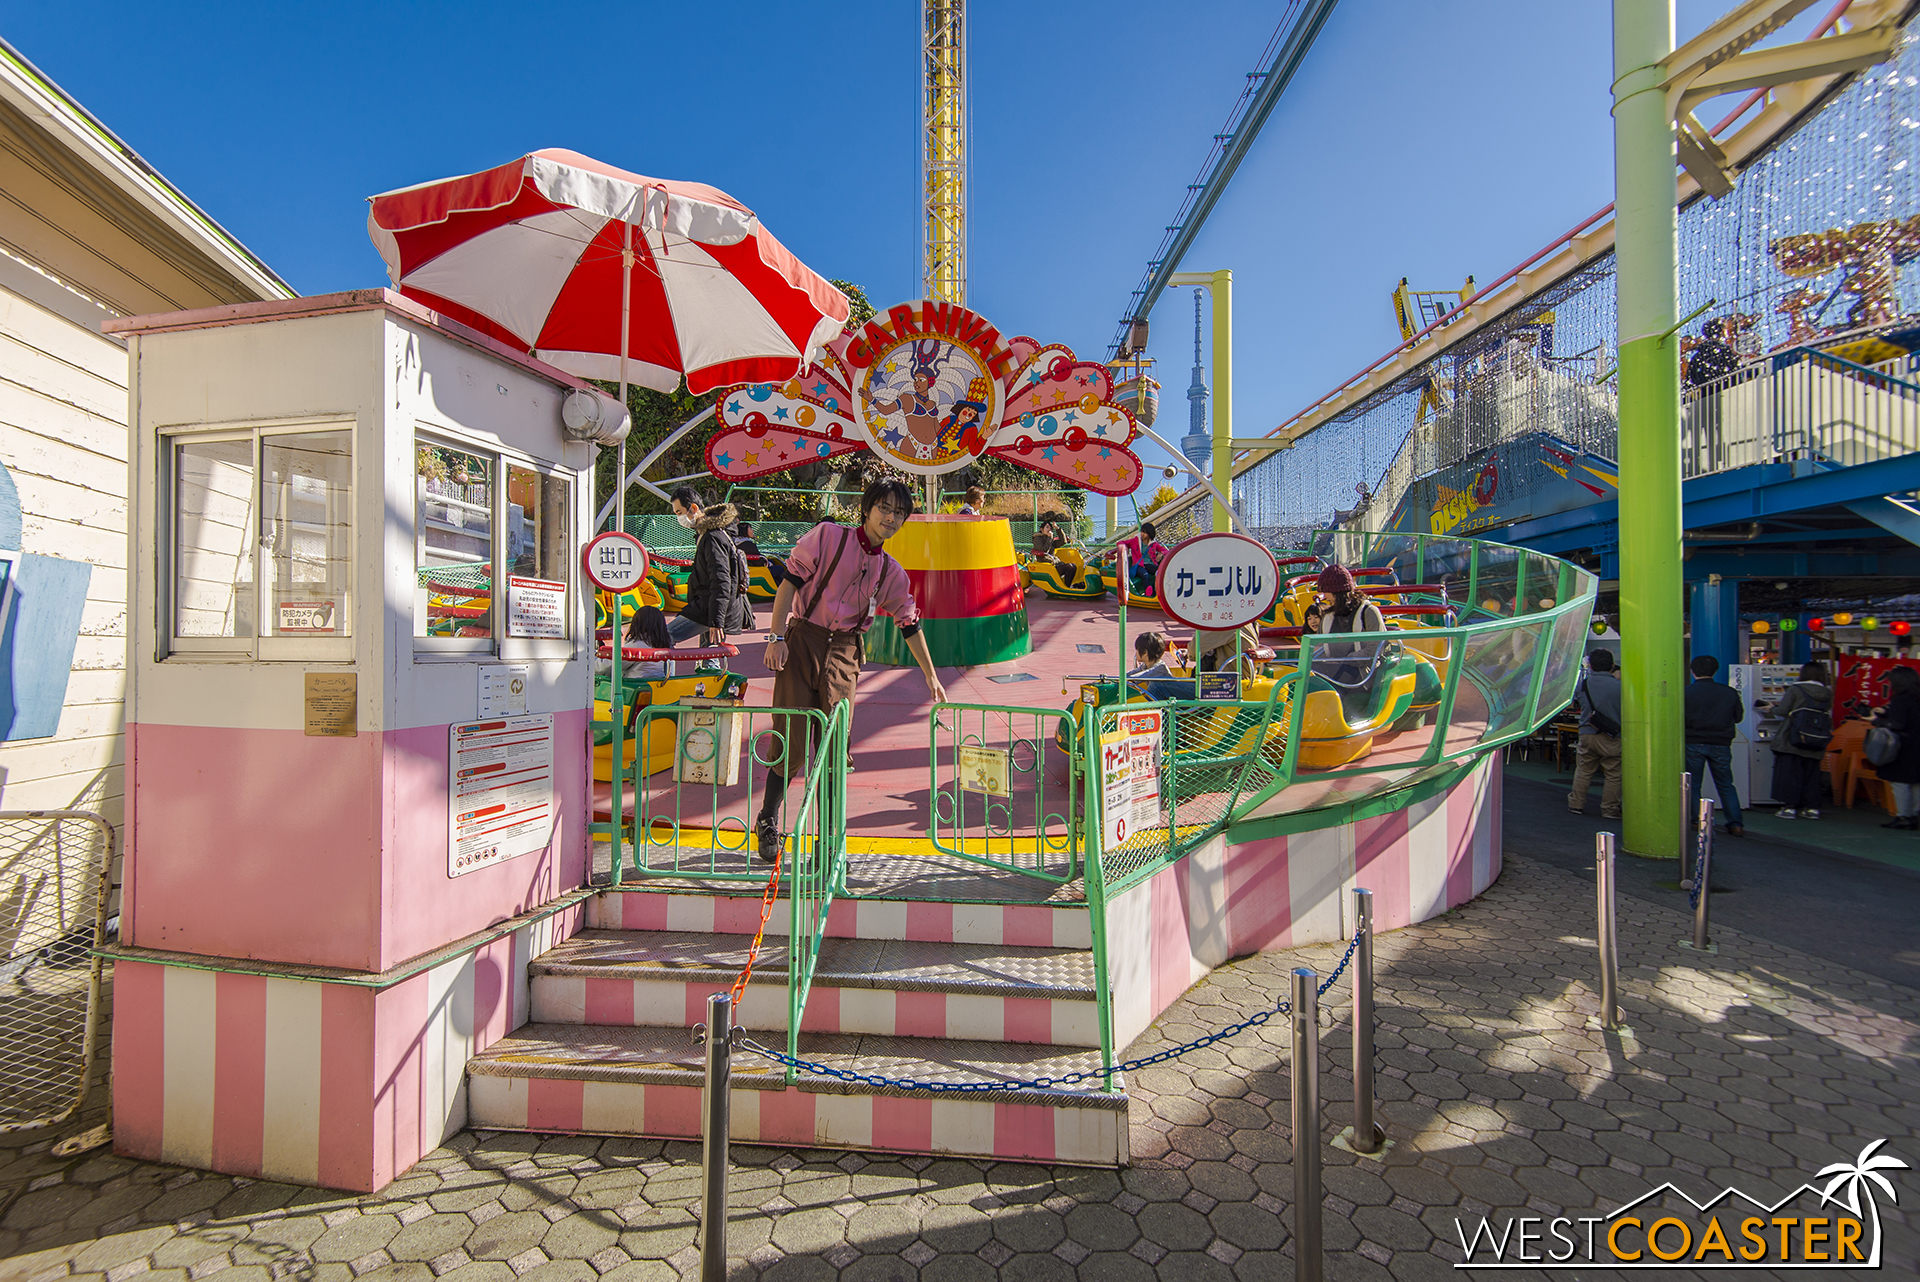 Another view of Carnival.